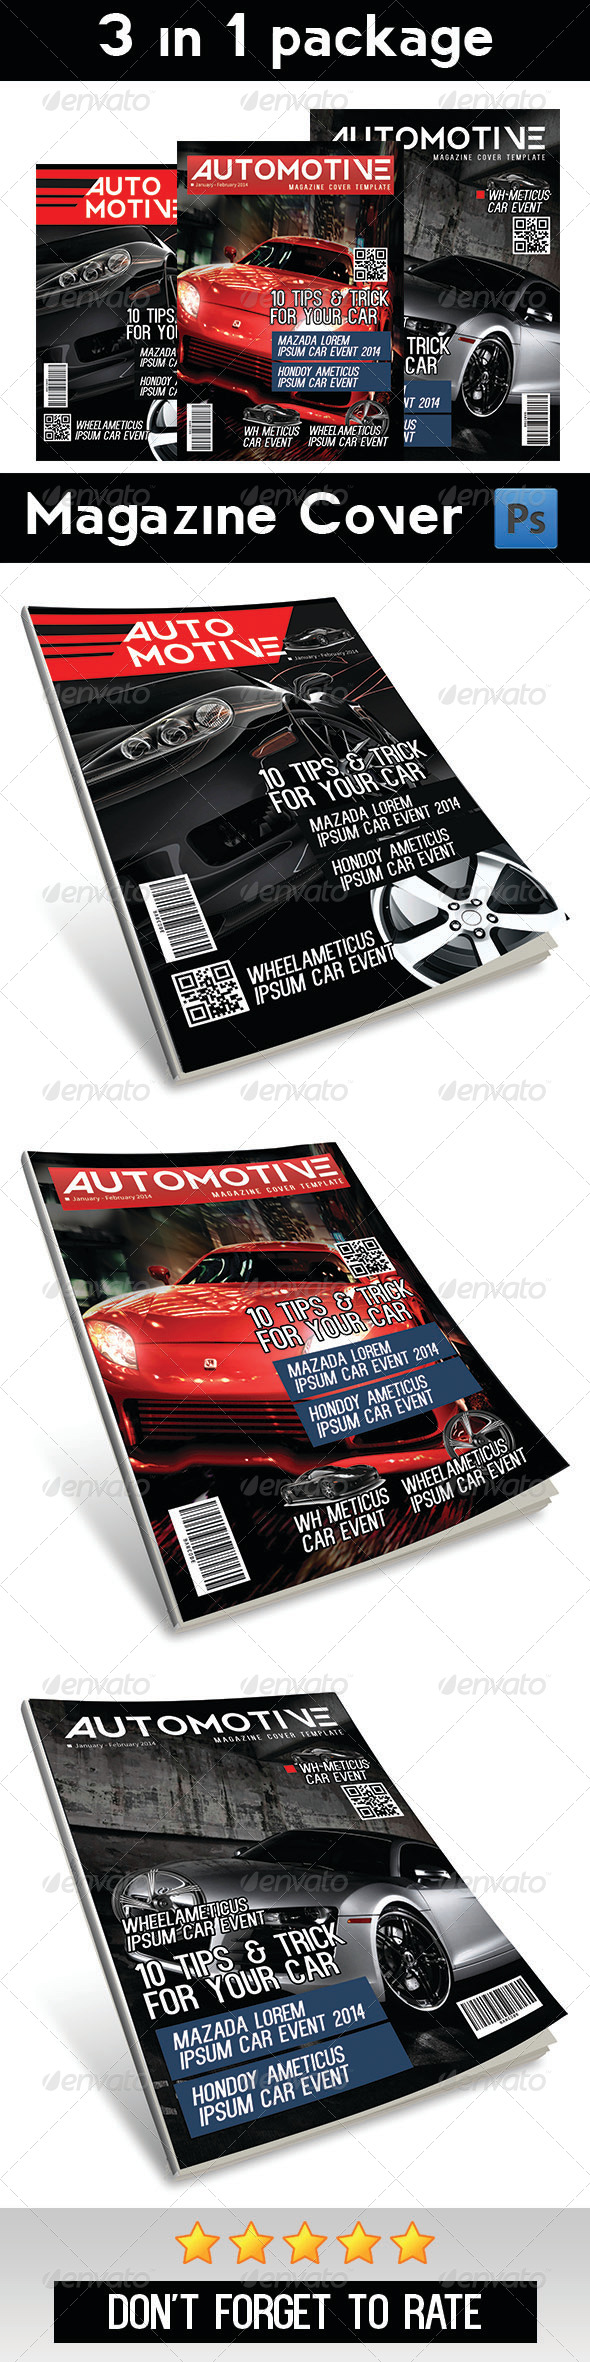 Automotive Magazine Cover Vol 1